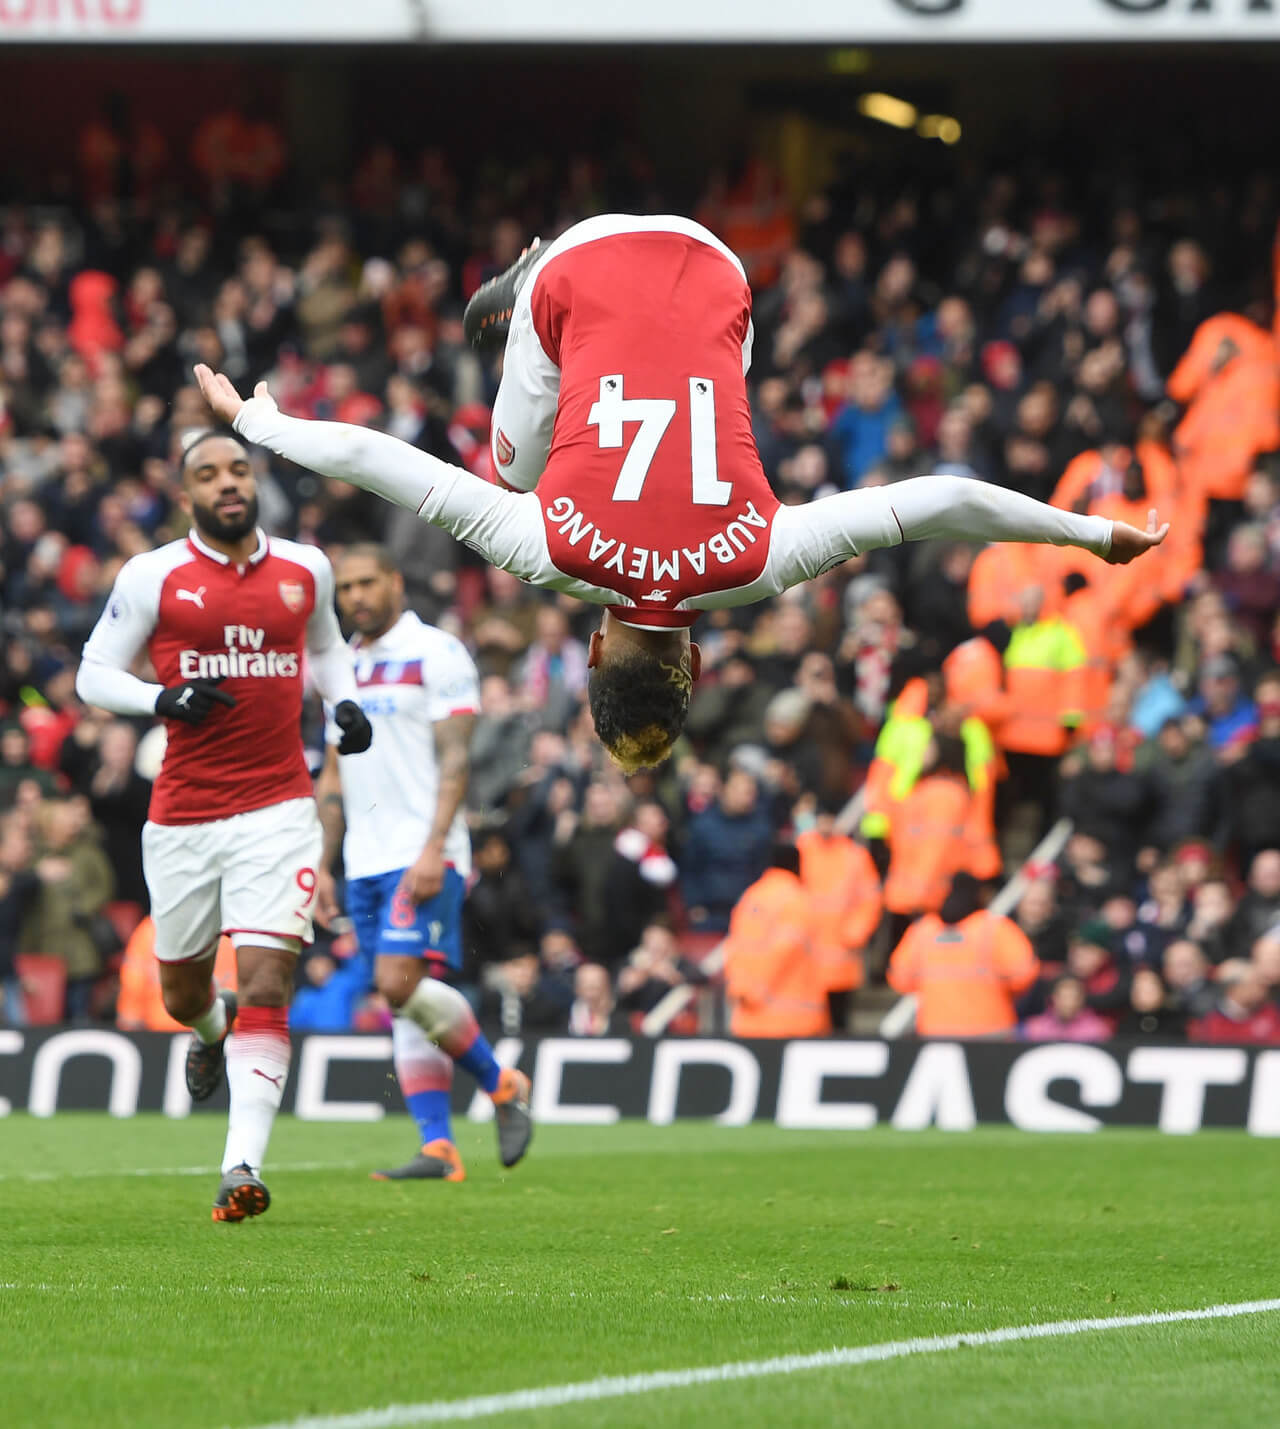 Pierre-Emerick Aubameyang scores for Arsenal against Southampton in the English Premier League